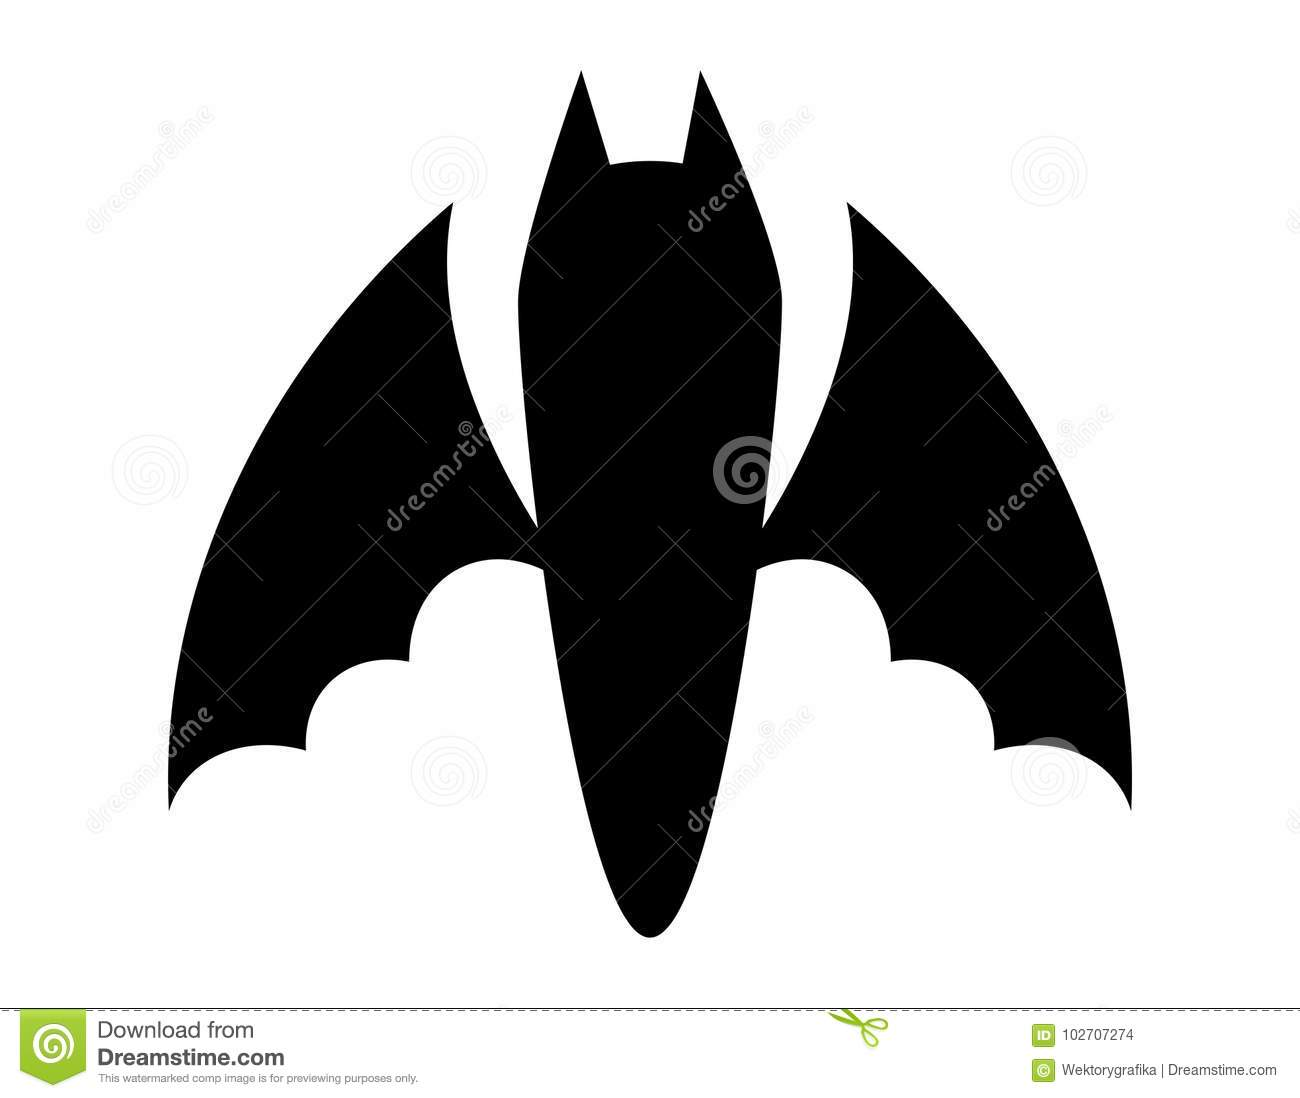 download halloween bat silhouette vector design isolated on white backgr stock vector illustration of holiday